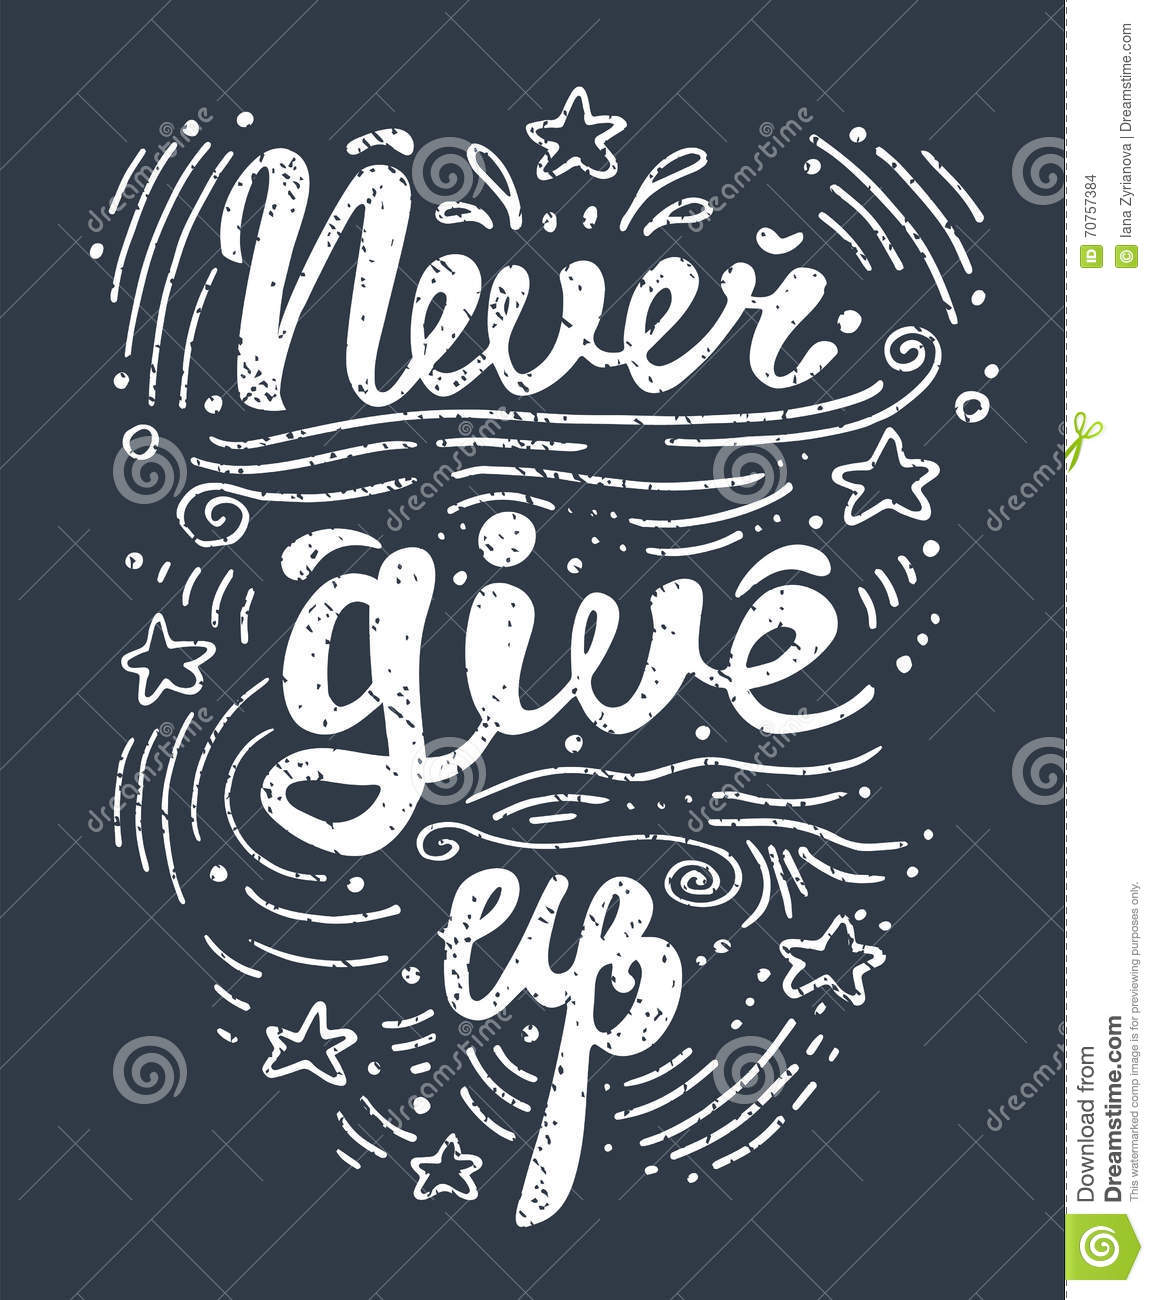 Quotes Never Give Up Vector Illustration Hand Drawn Lettering Motivational And